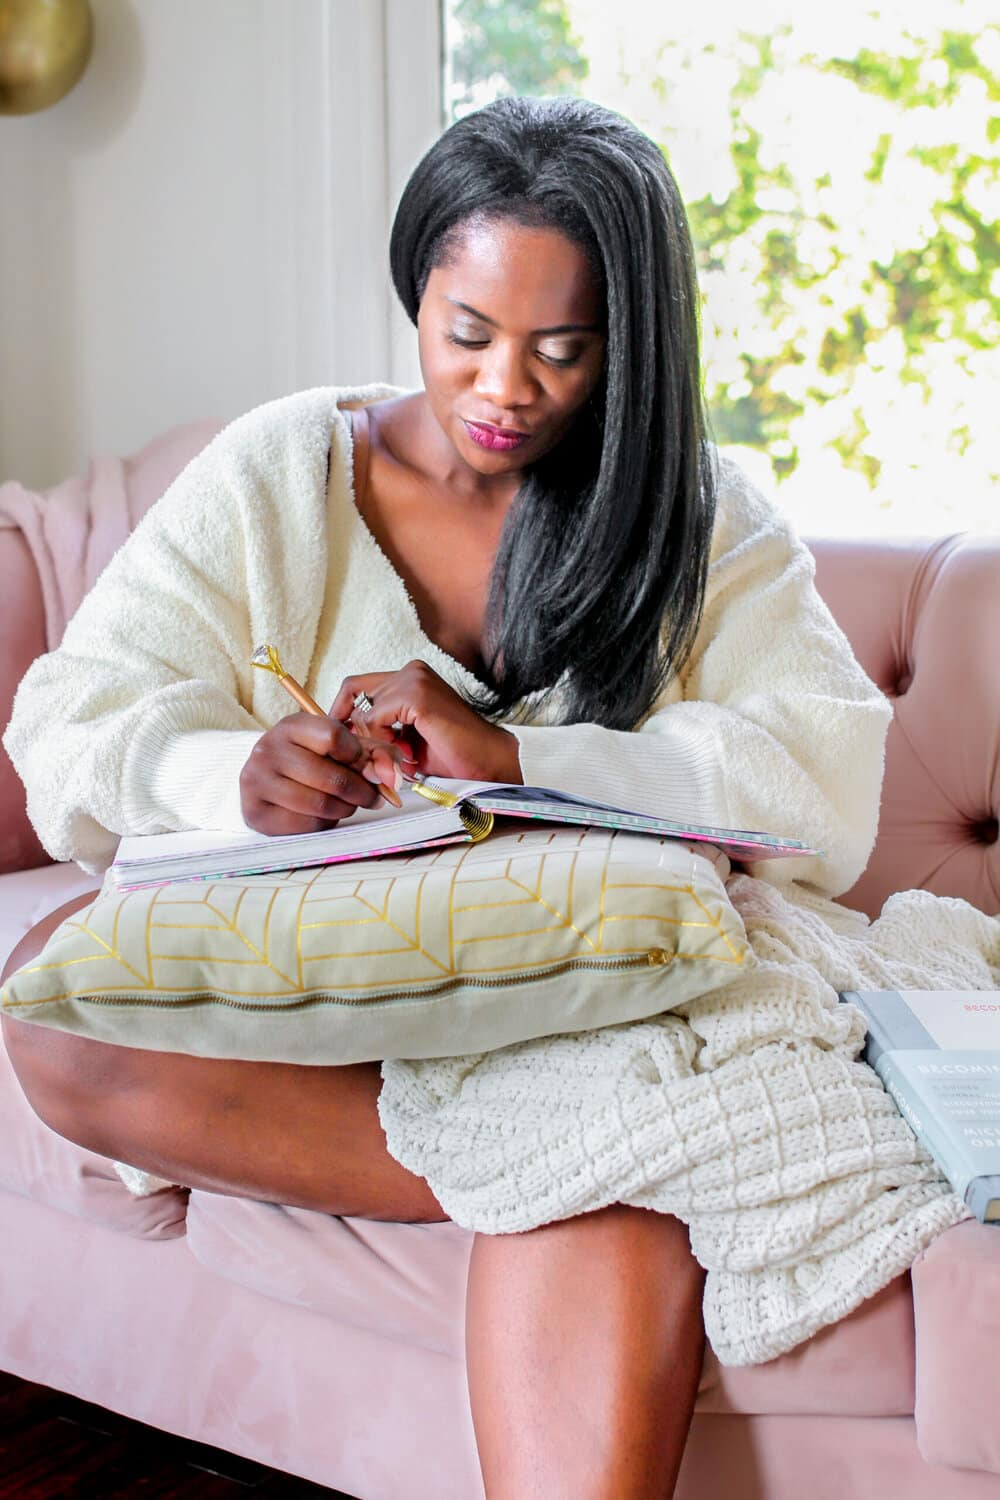 woman sitting on coach writing in journal